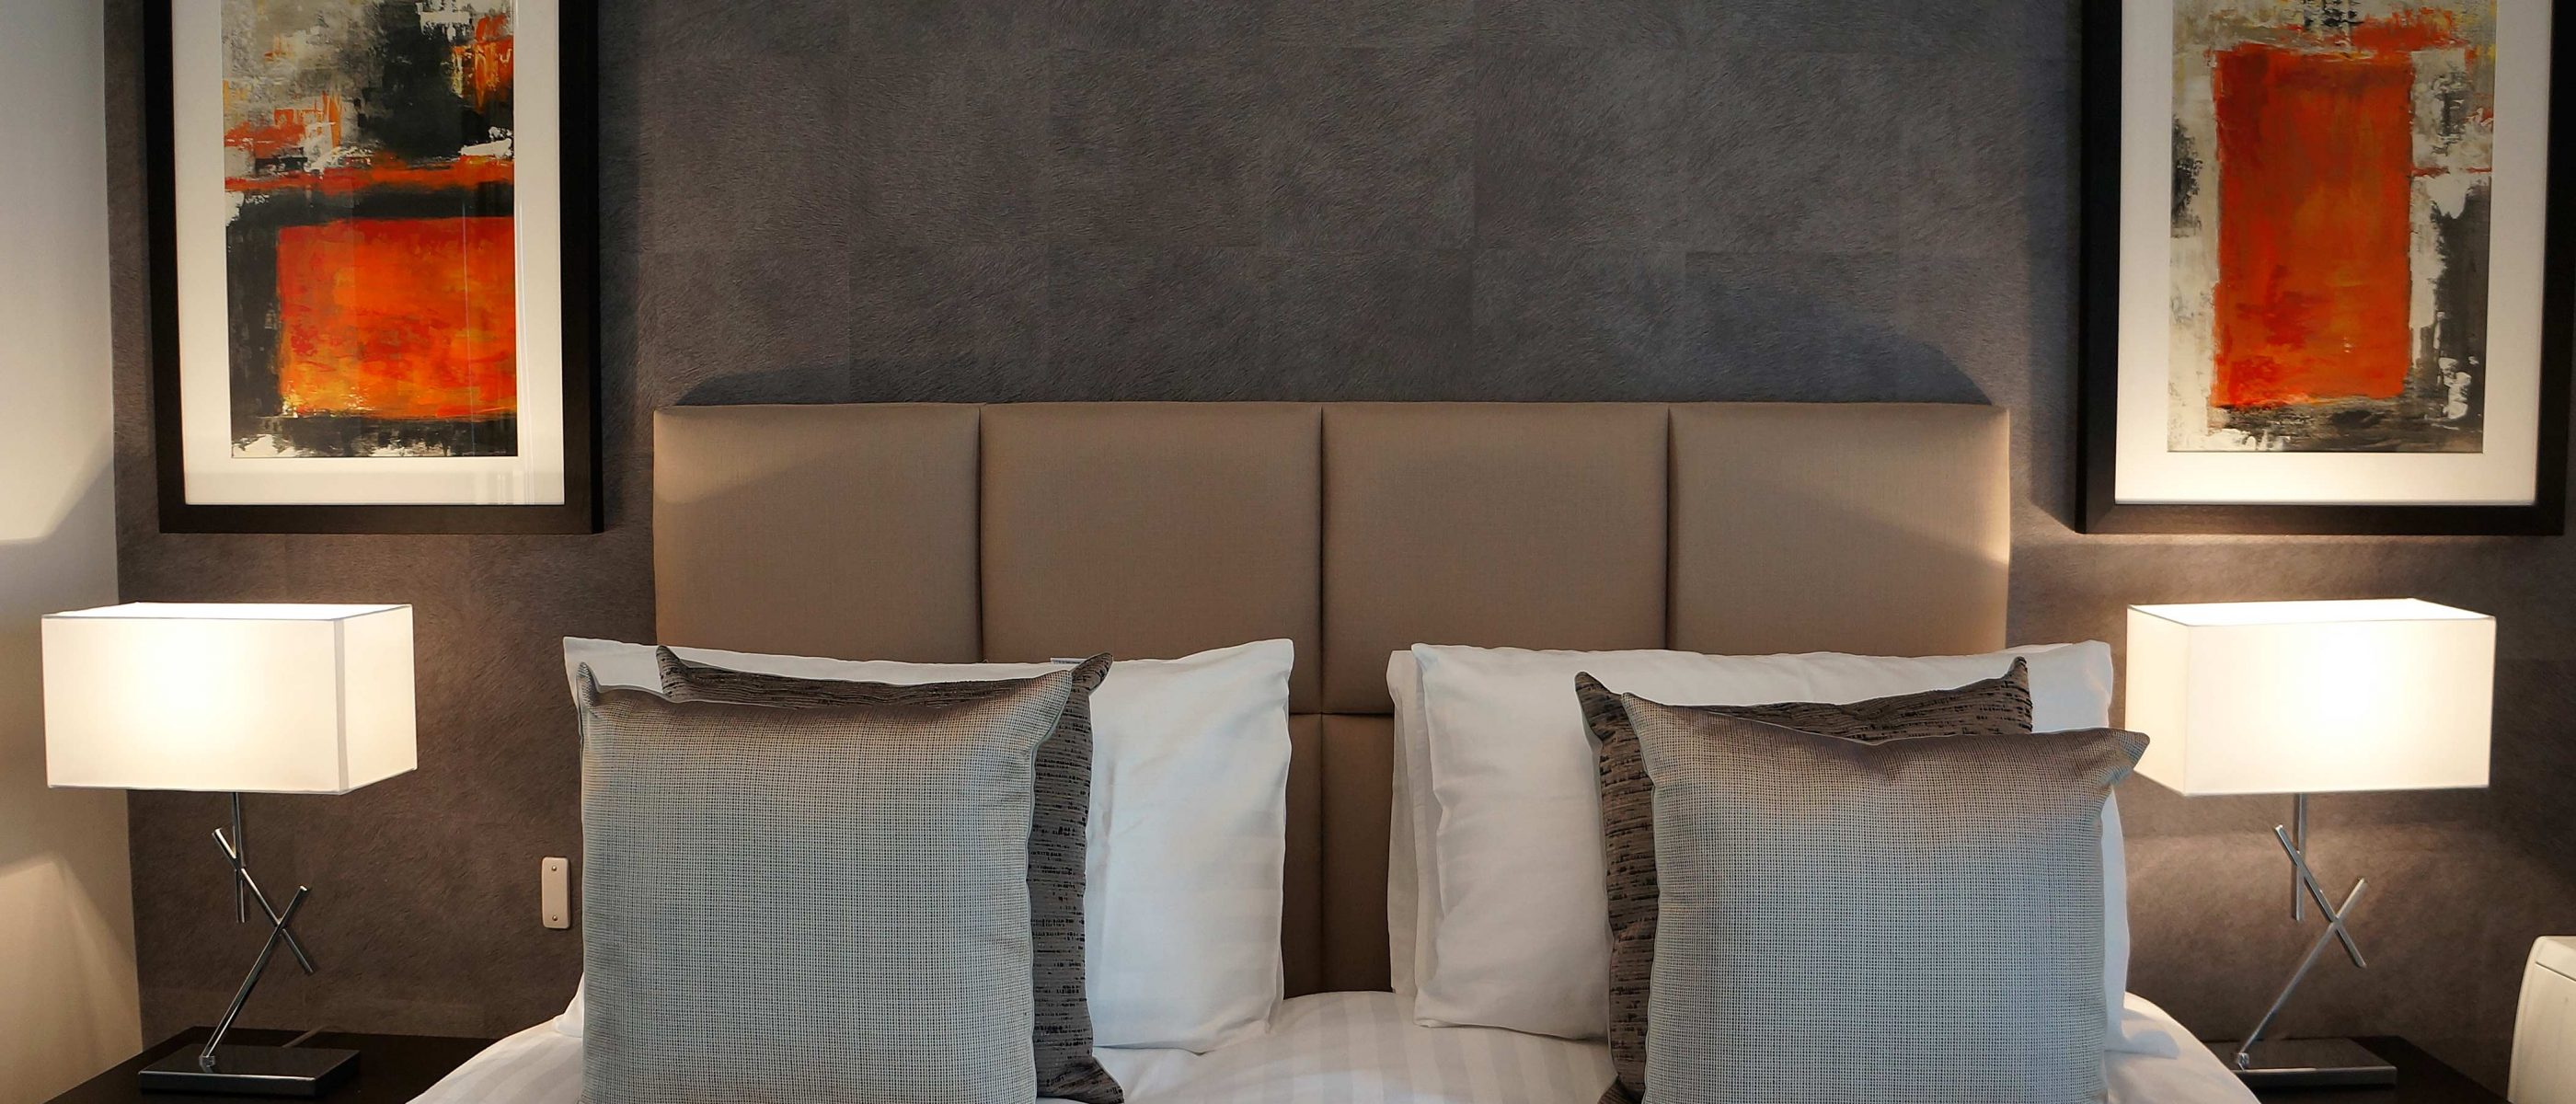 The bedroom in the Daniel Harris Suite: a one bedroom luxury serviced apartment at The Old Gaol, by the River Thames in Abingdon, near Oxford. Ideal accommodation for corporate or holiday short lets